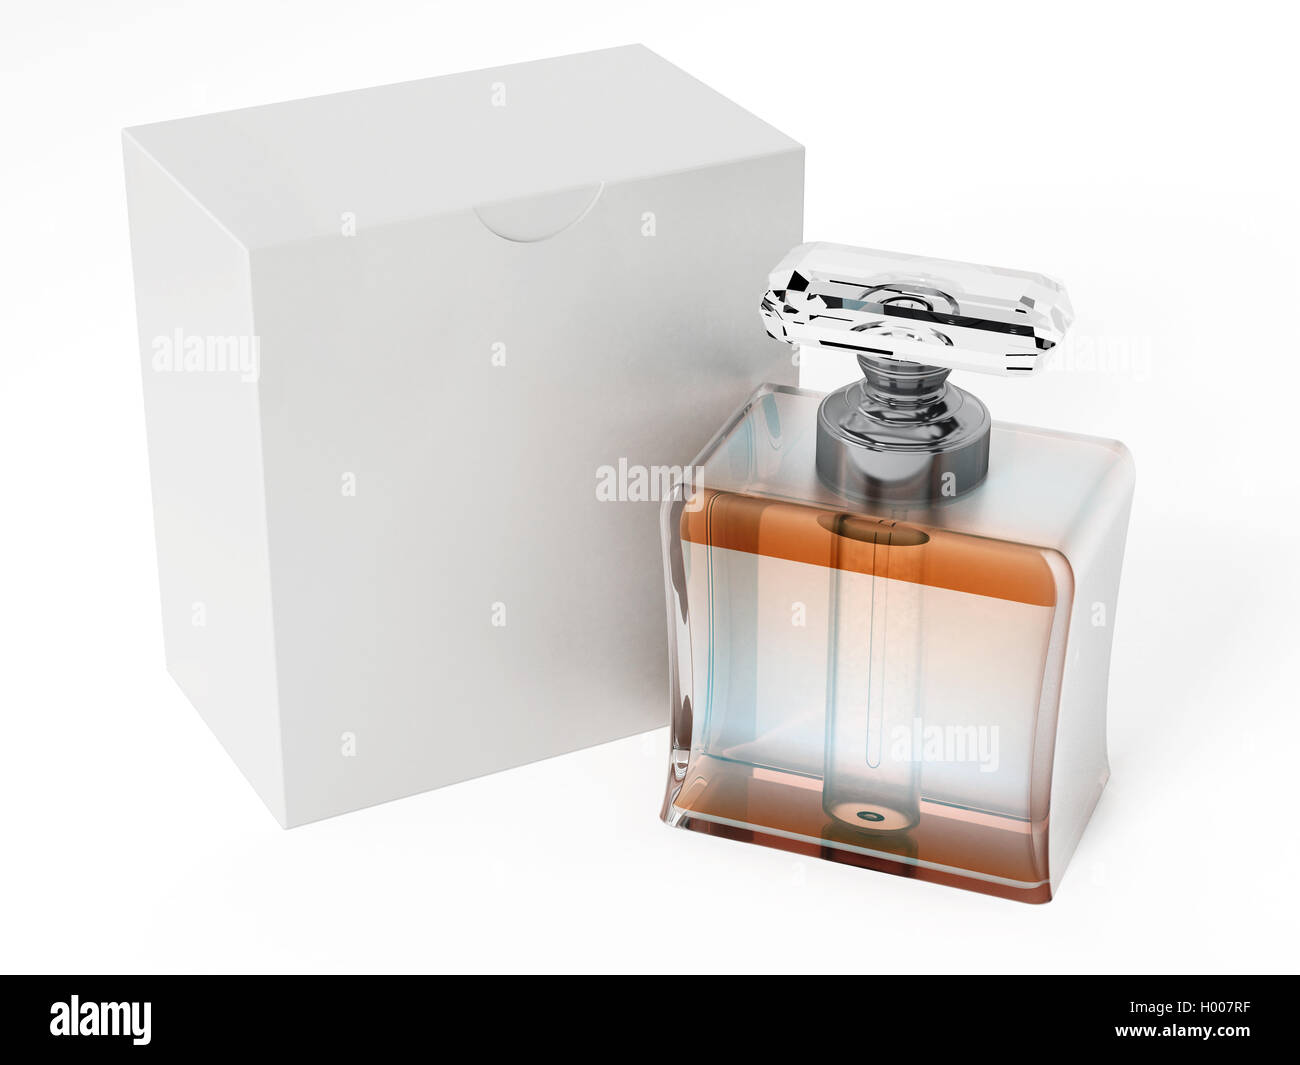 Perfume Bottle And Blank White Box 3d Illustration Stock Photo